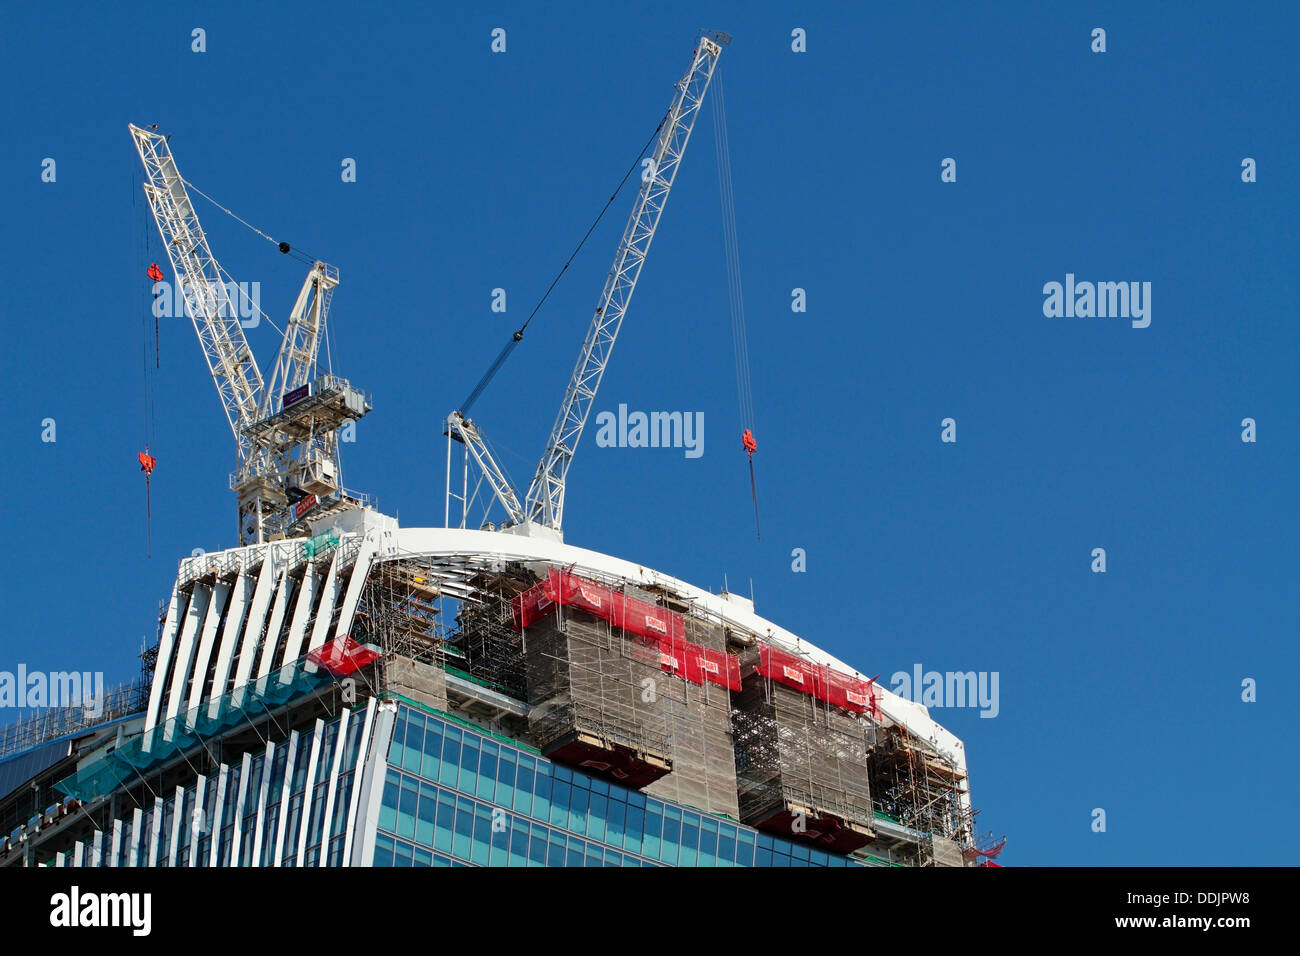 The 'Walkie Talkie' 'The Pint' while still under construction, 20 Fenchurch Street, London England, United Kingdom - Stock Image